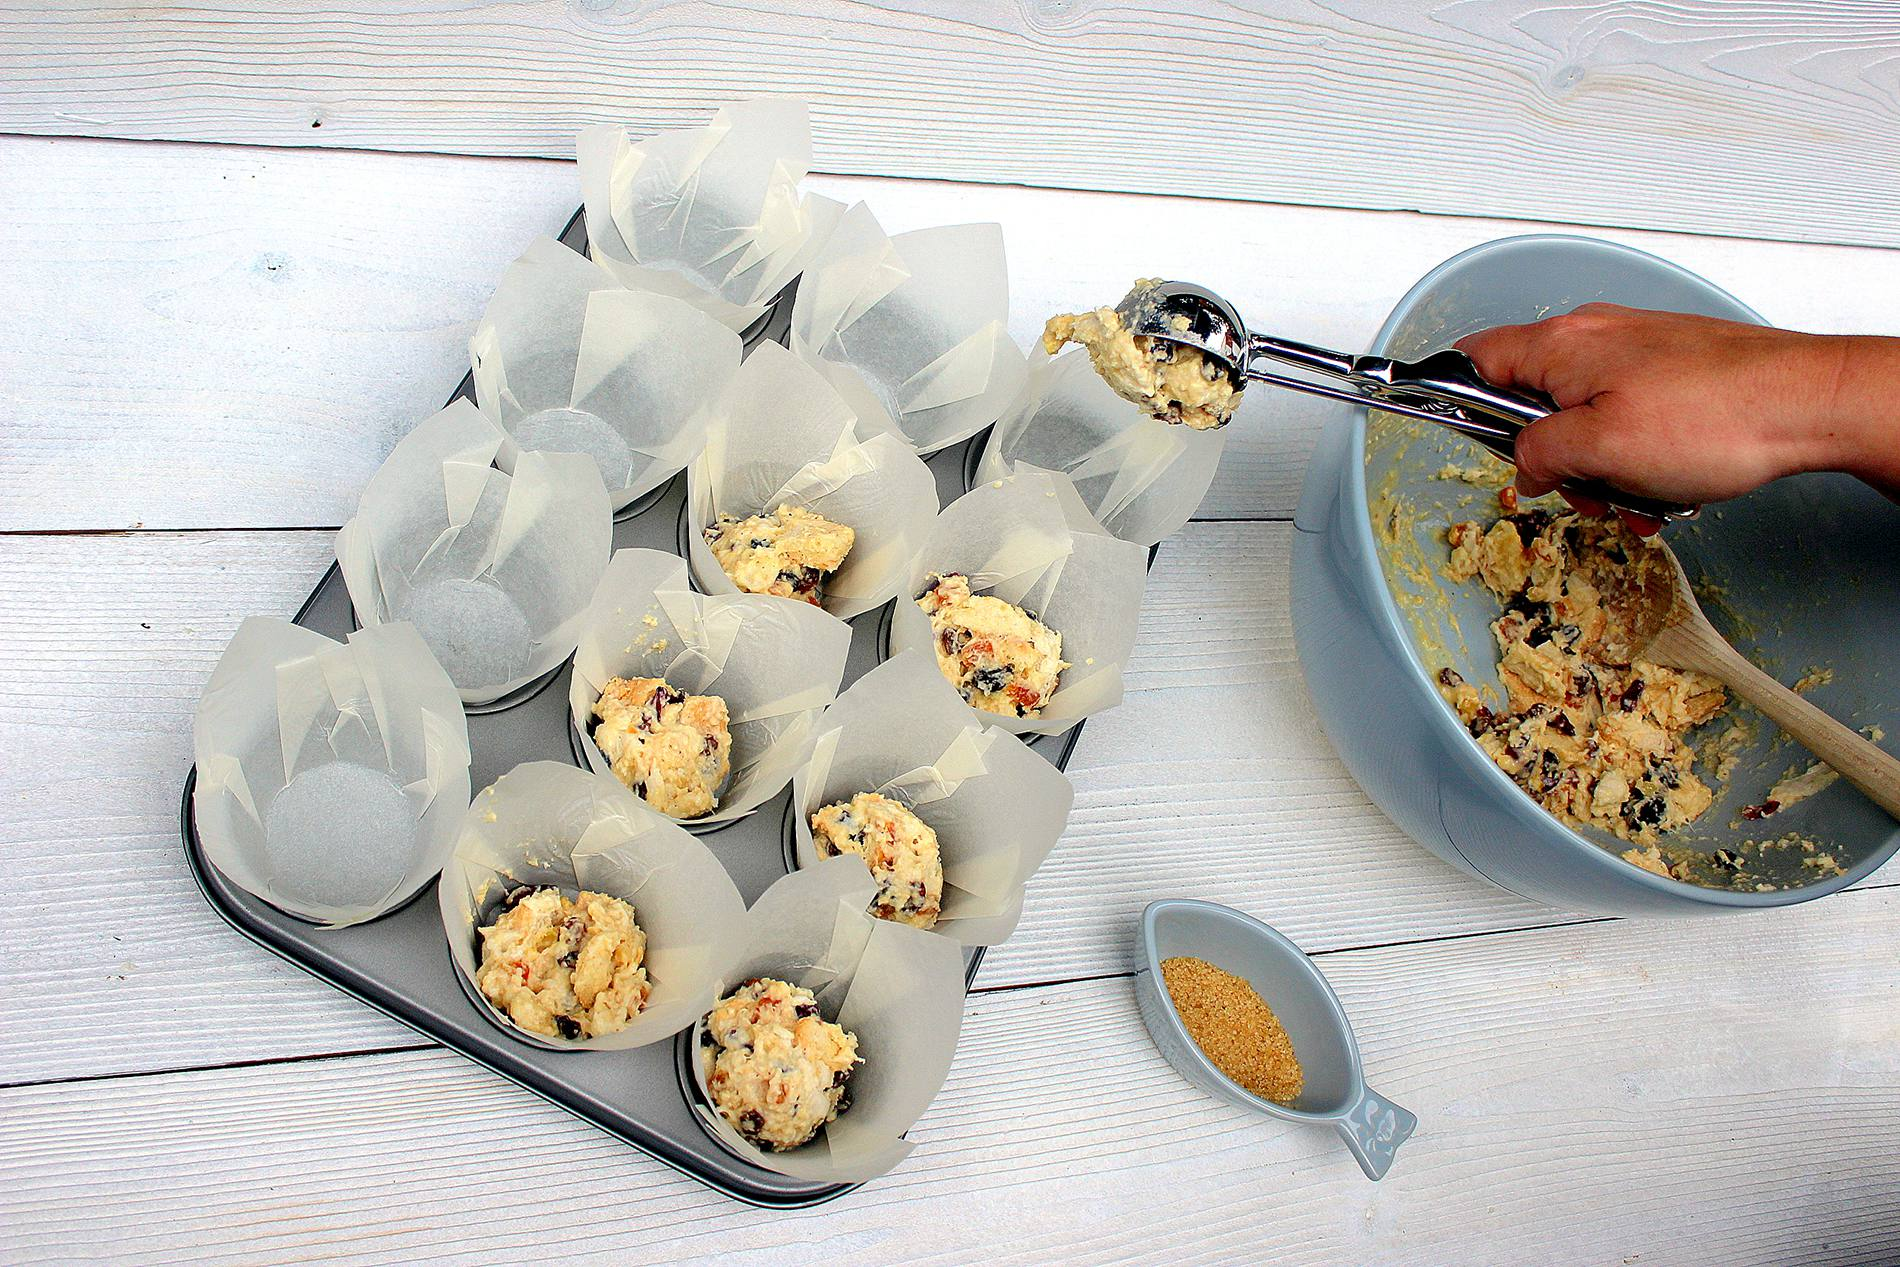 Scoop into muffin cases, top with sugar